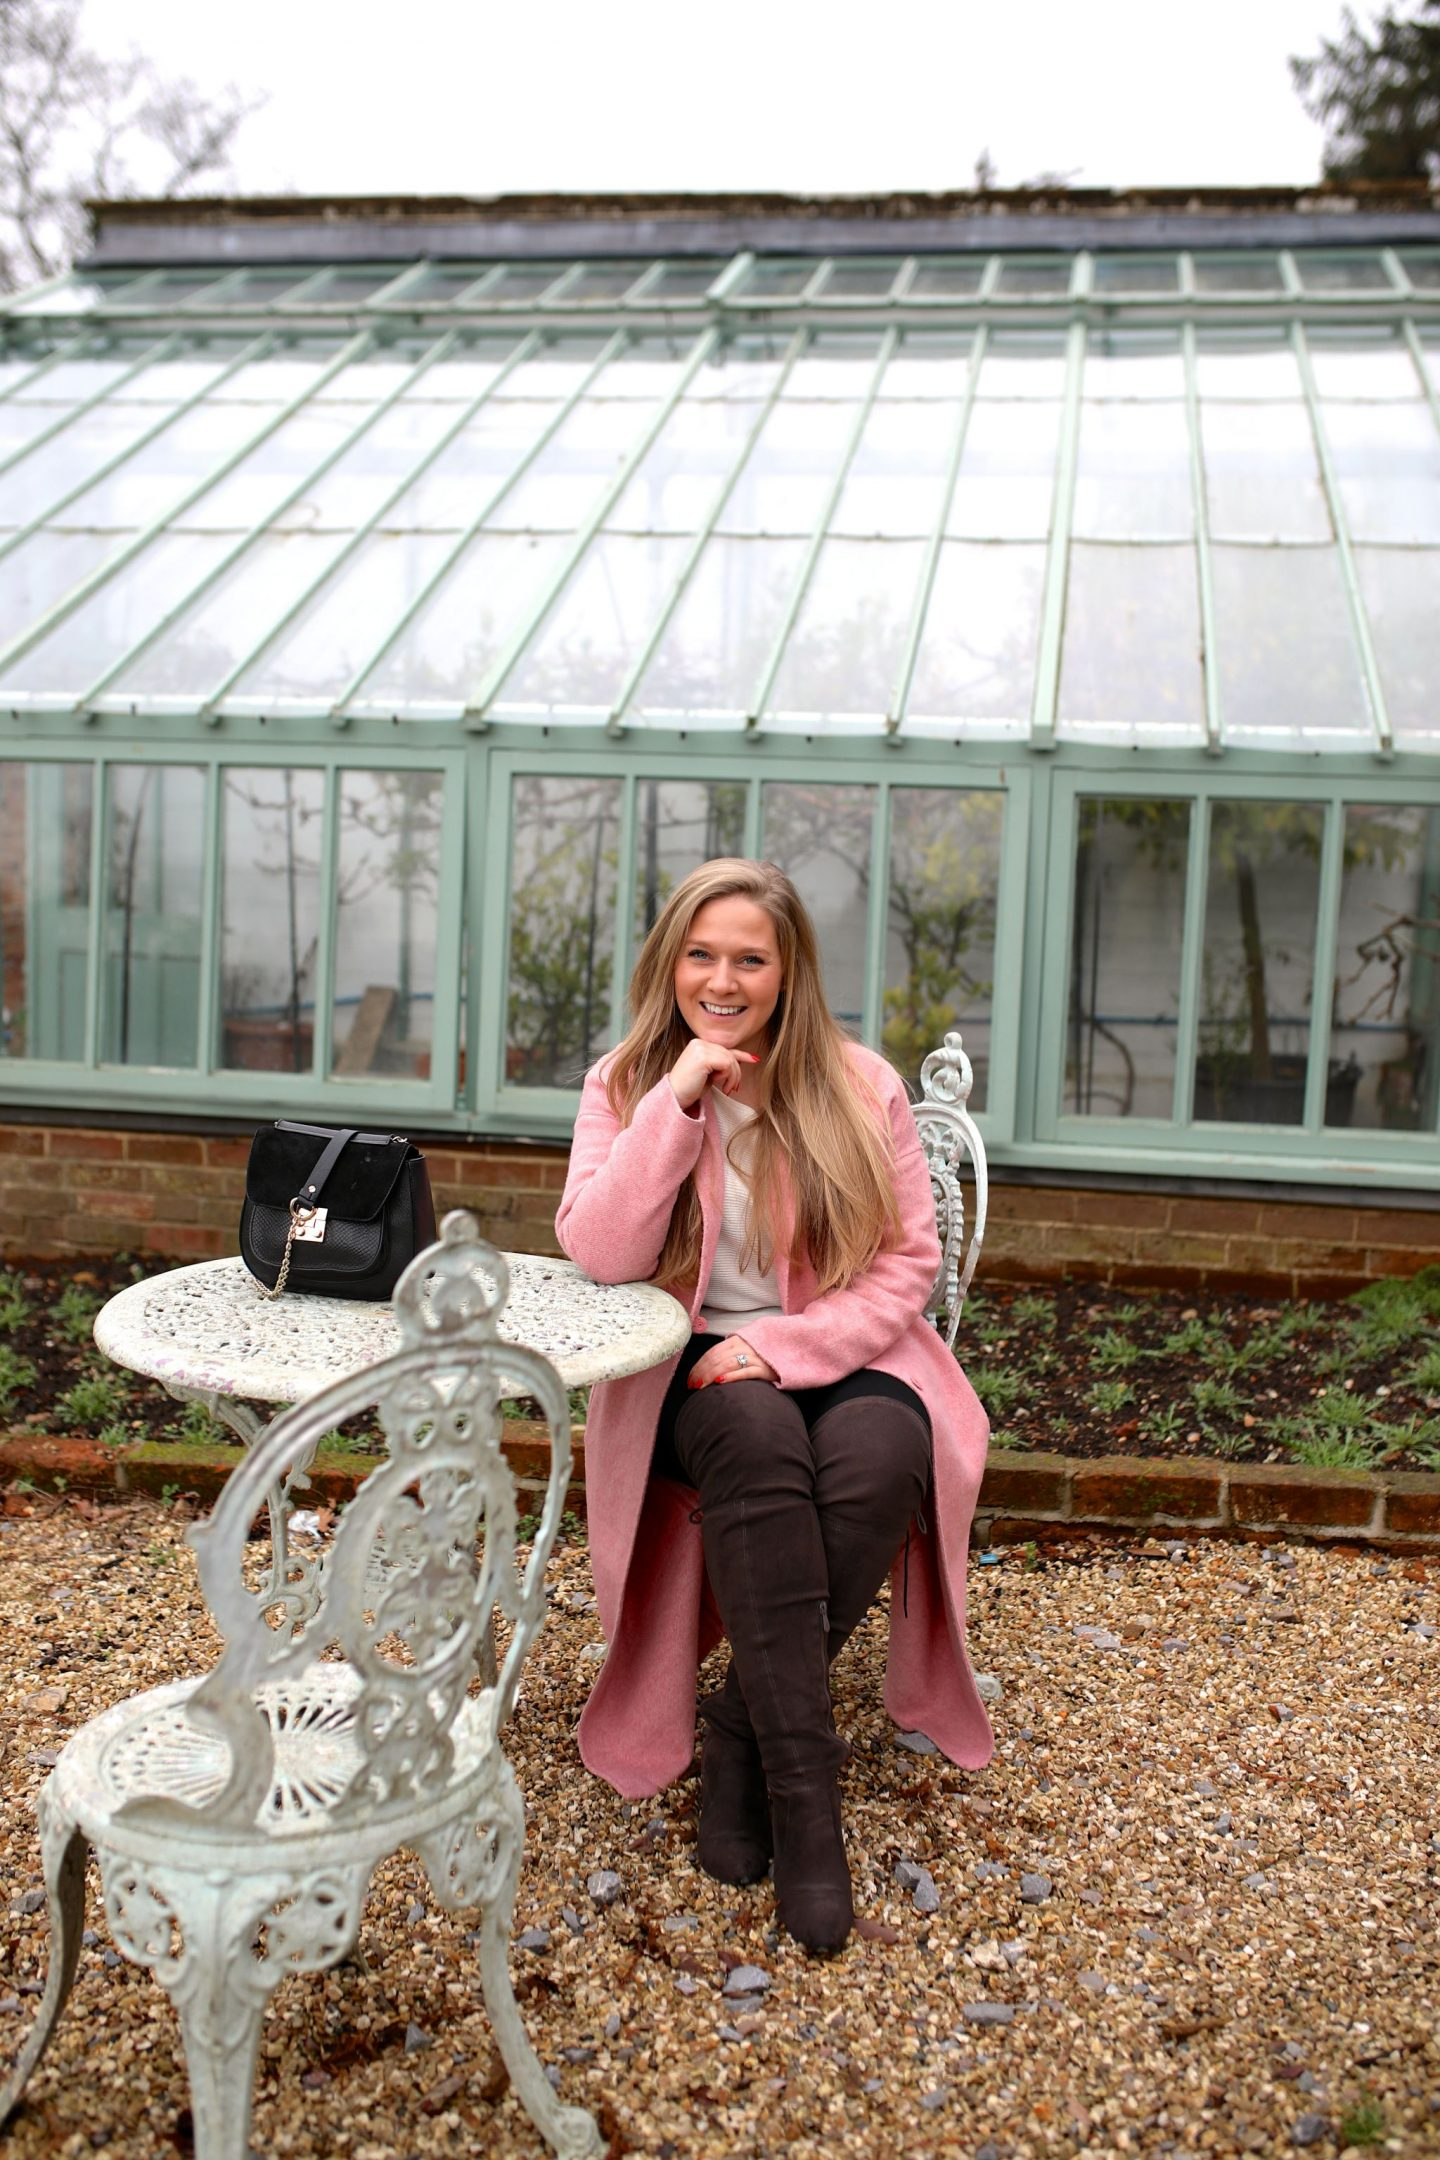 The Pig at Combe, Gittisham, Devon, Katie Heath KALANCHOE,